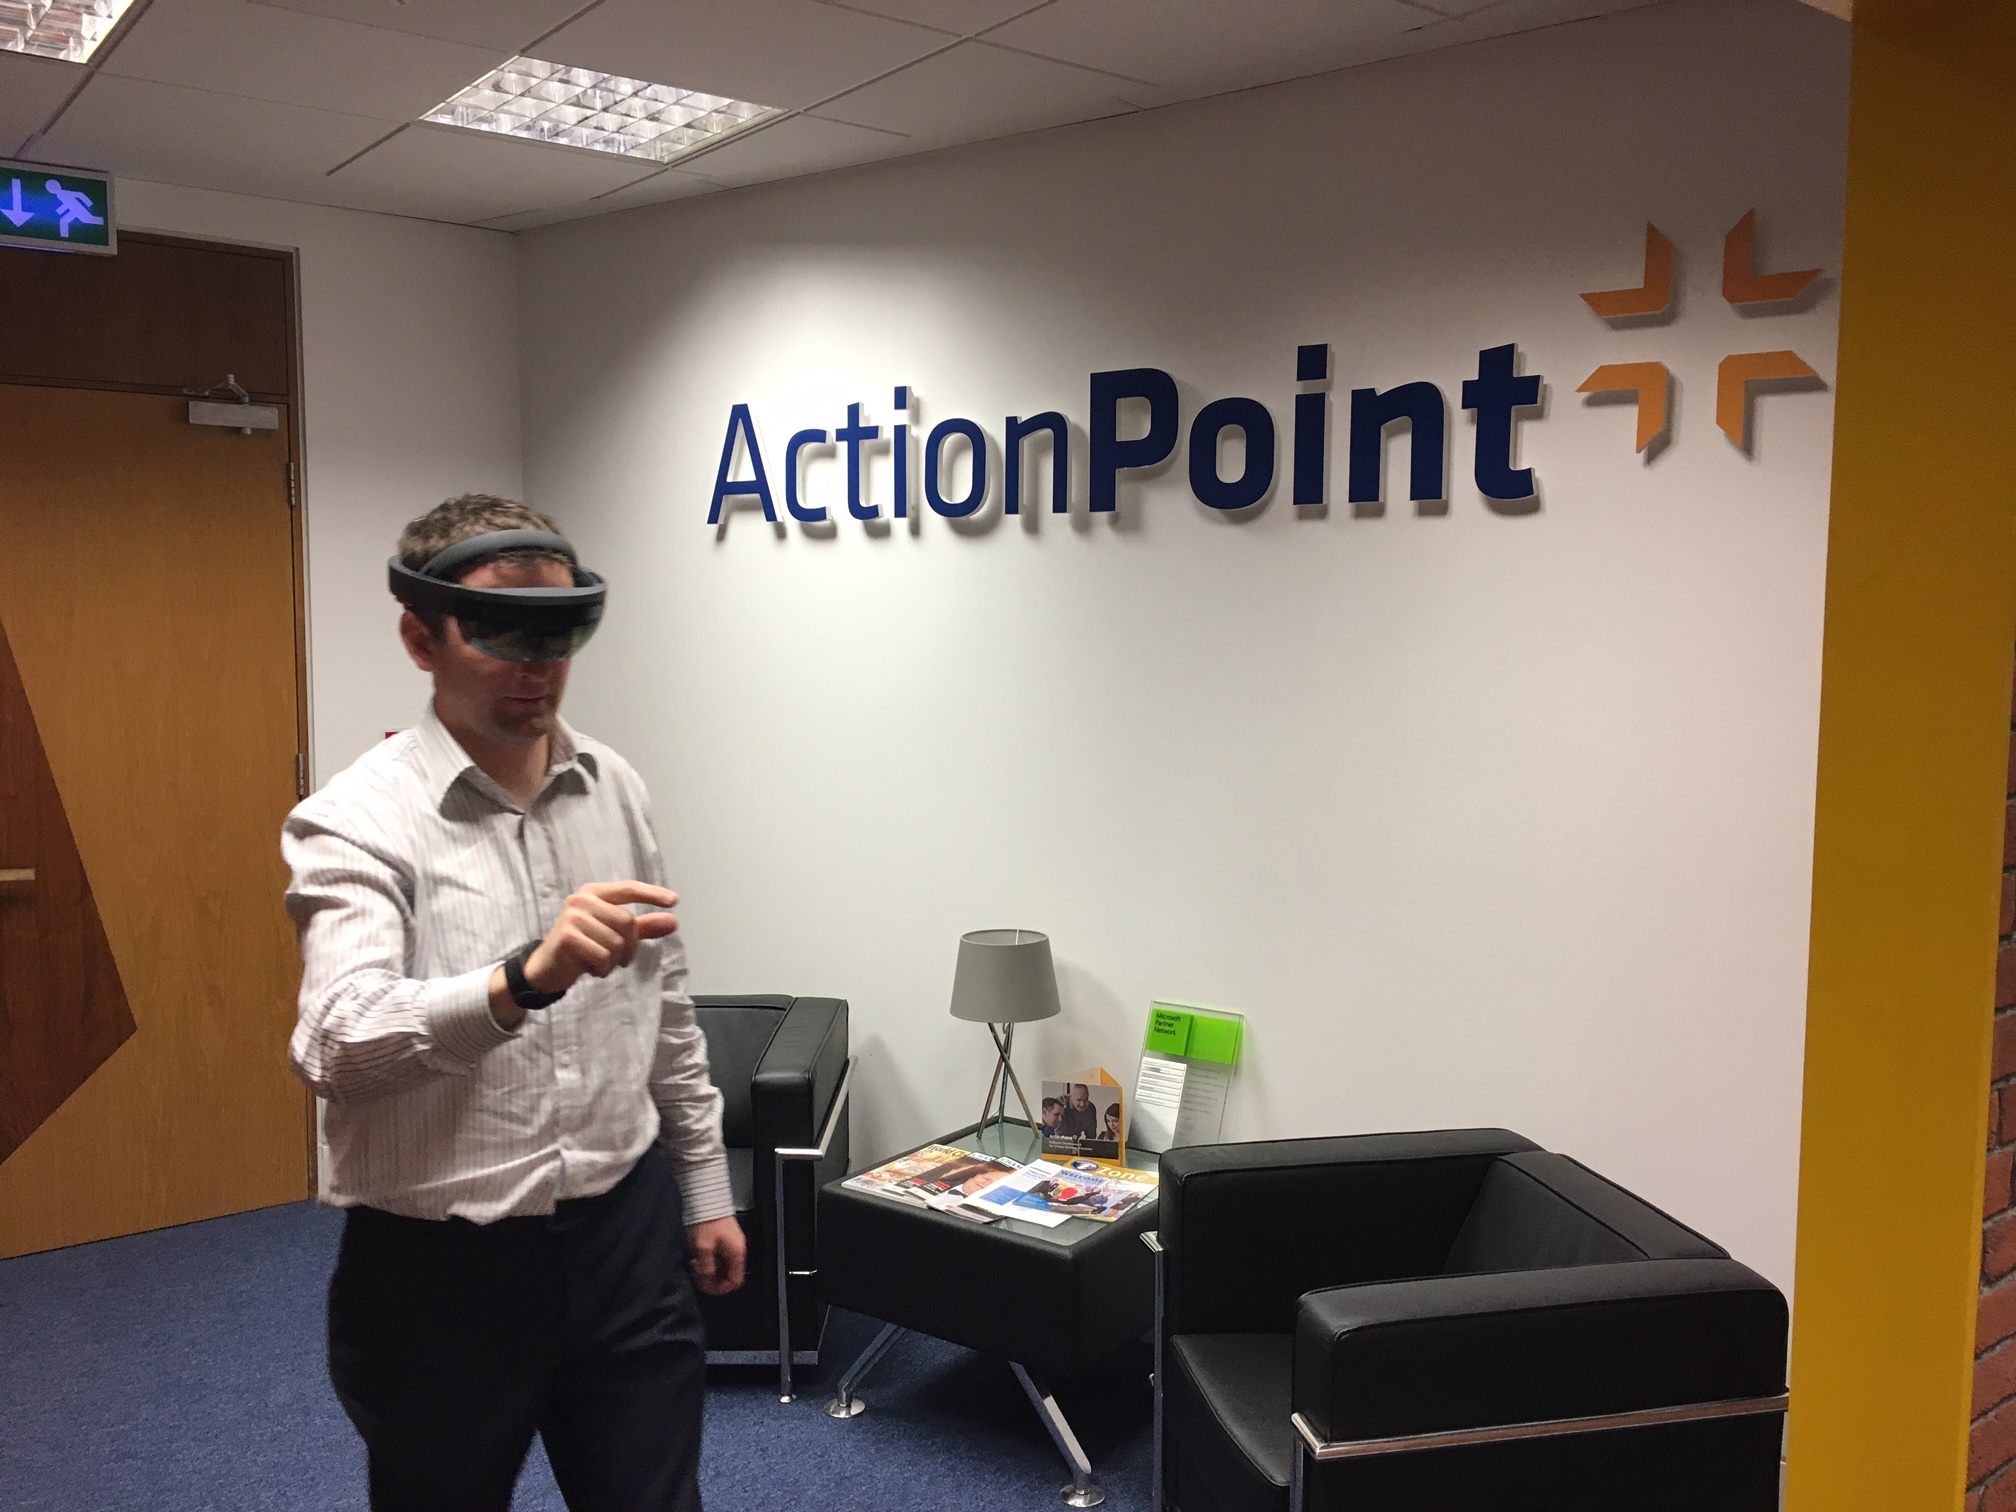 John demonstrating the Hololens